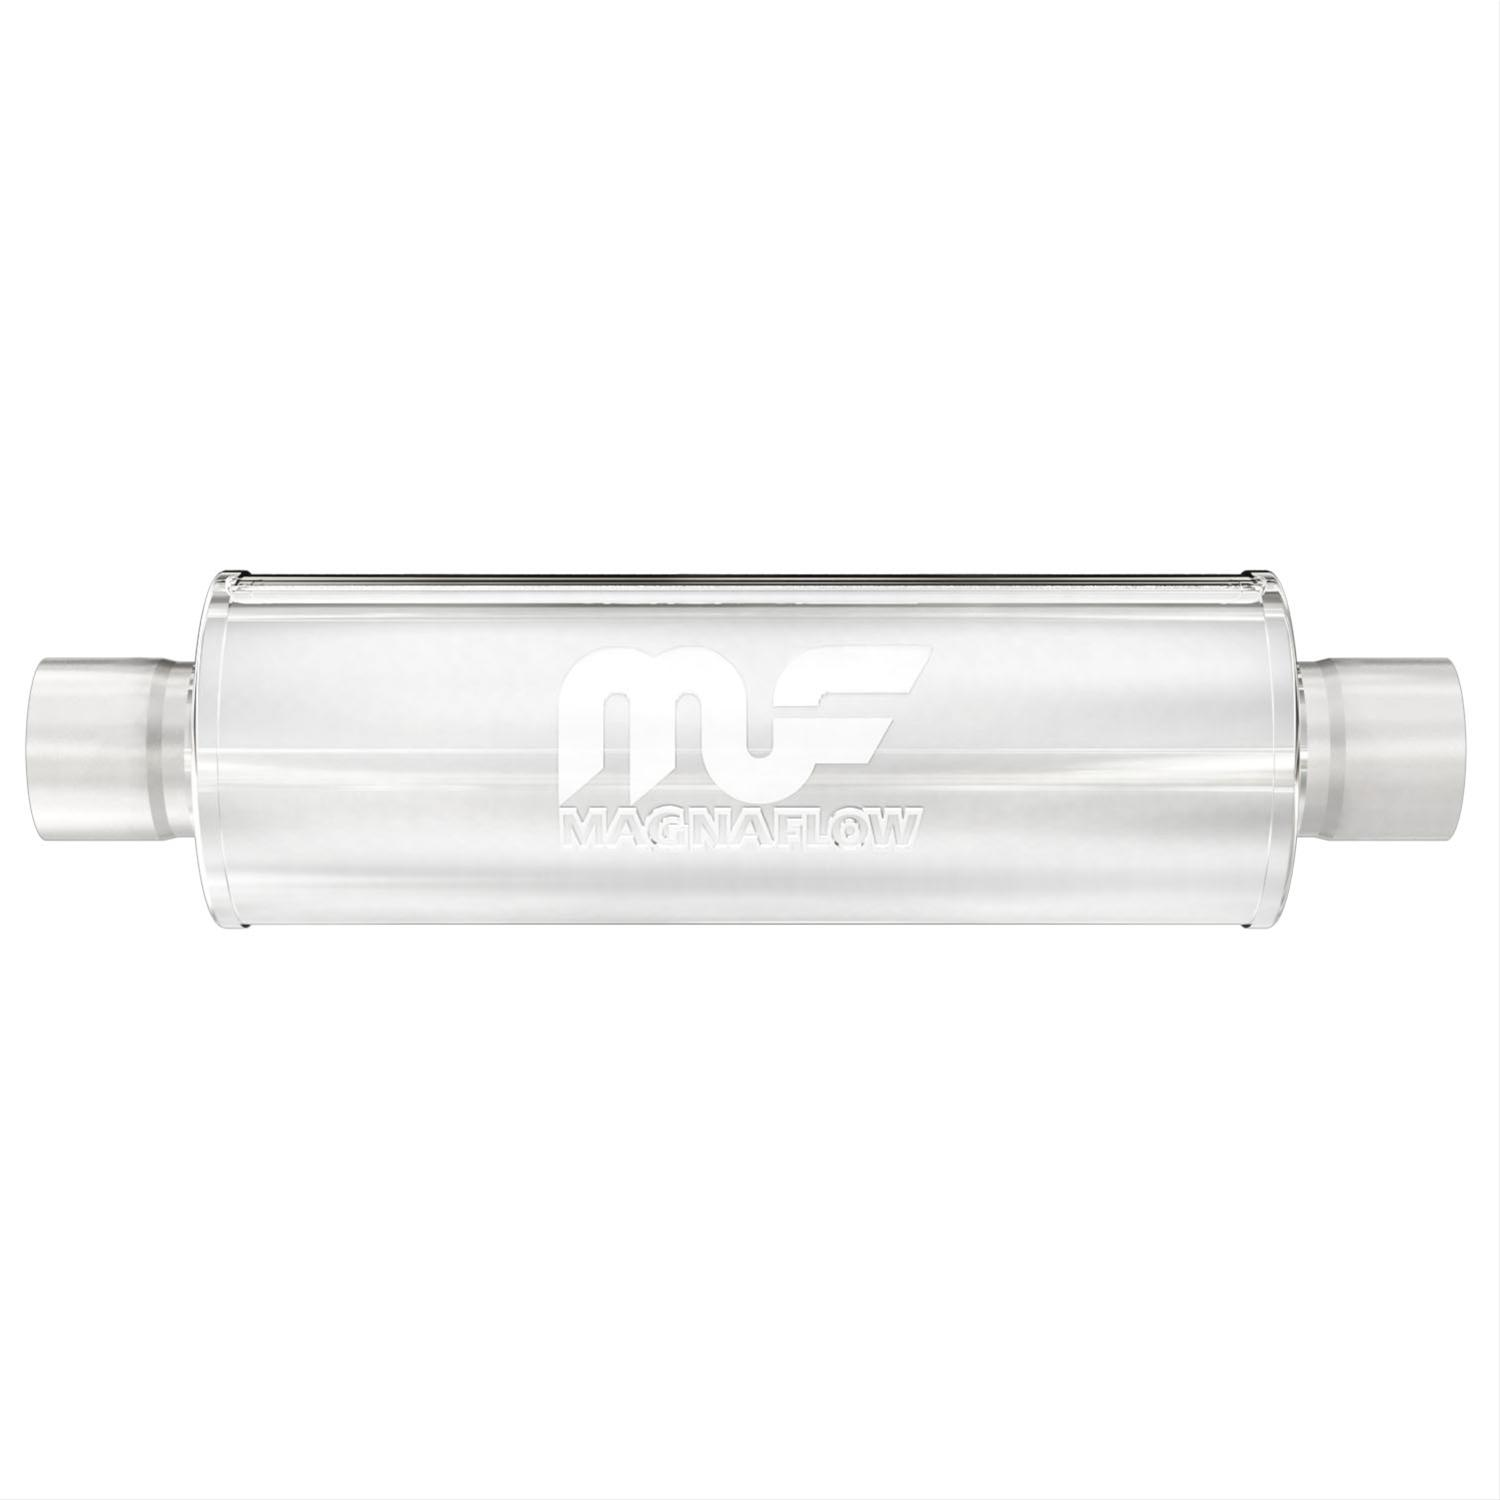 Magnaflow Performance Mufflers 14771 Free Shipping On Orders Over